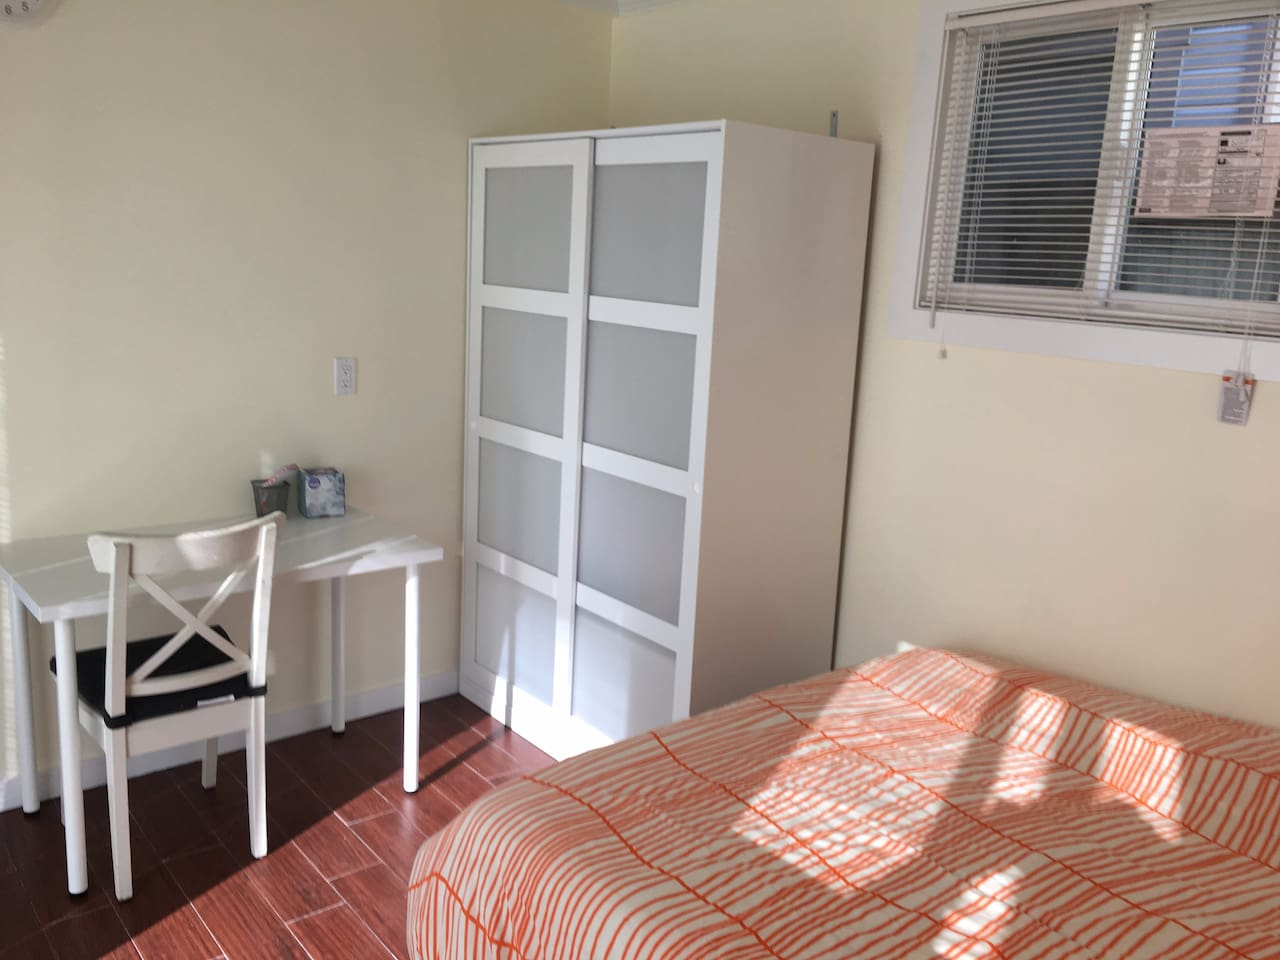 Newly remodeled room in Sunset(private entrance) 3